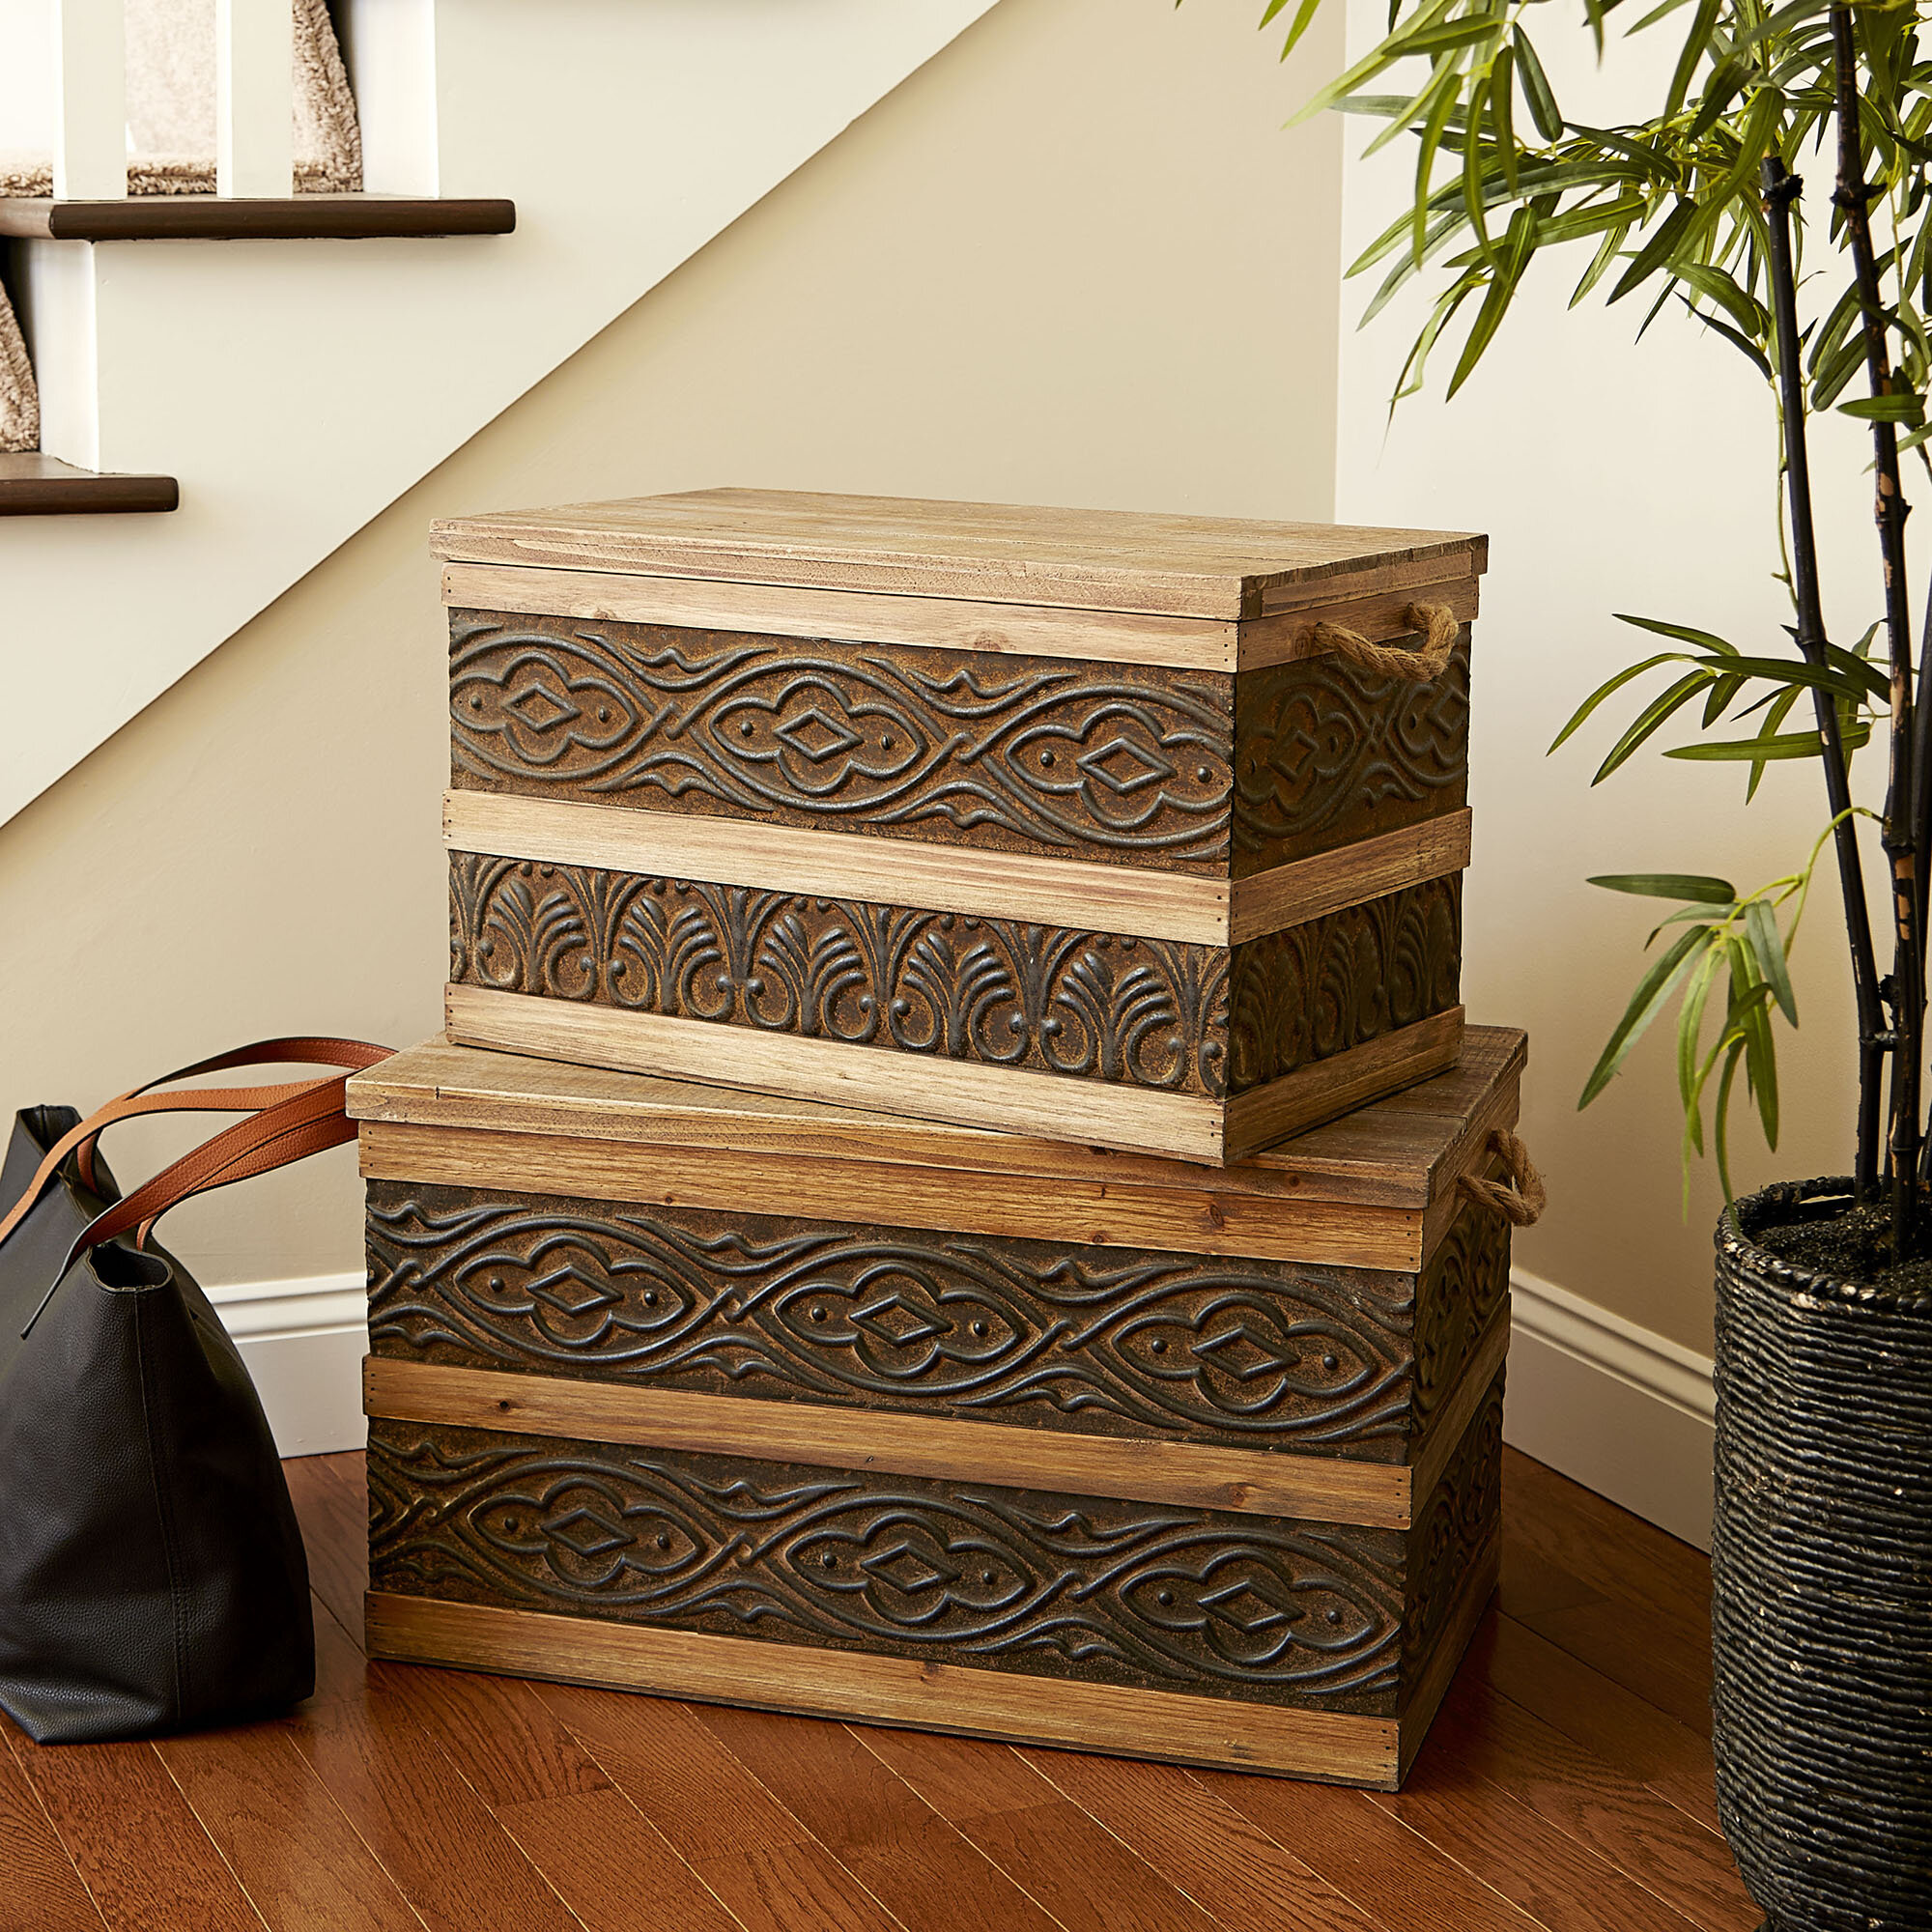 Household Essentials Decorative Metal Banded Wooden Storage Trunk with Handles Small